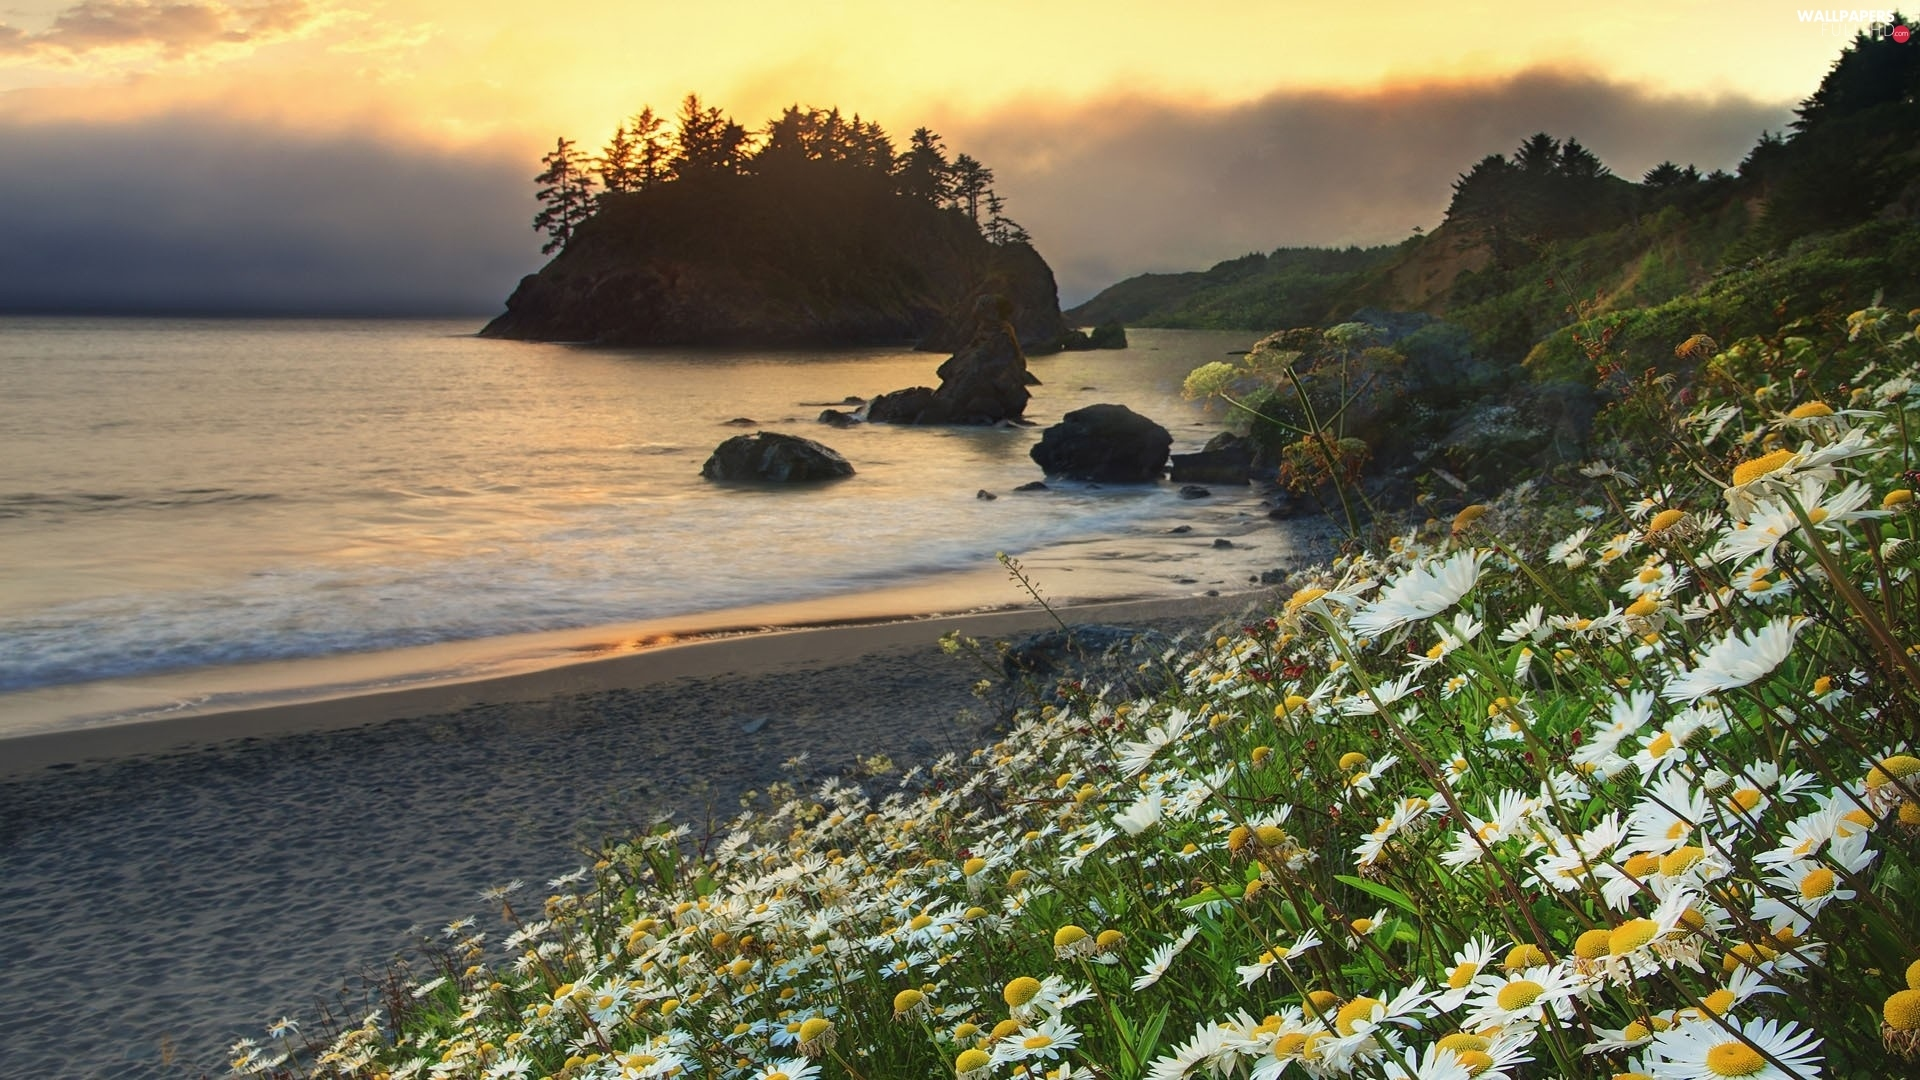 Flowers, Beaches, Island, Coast